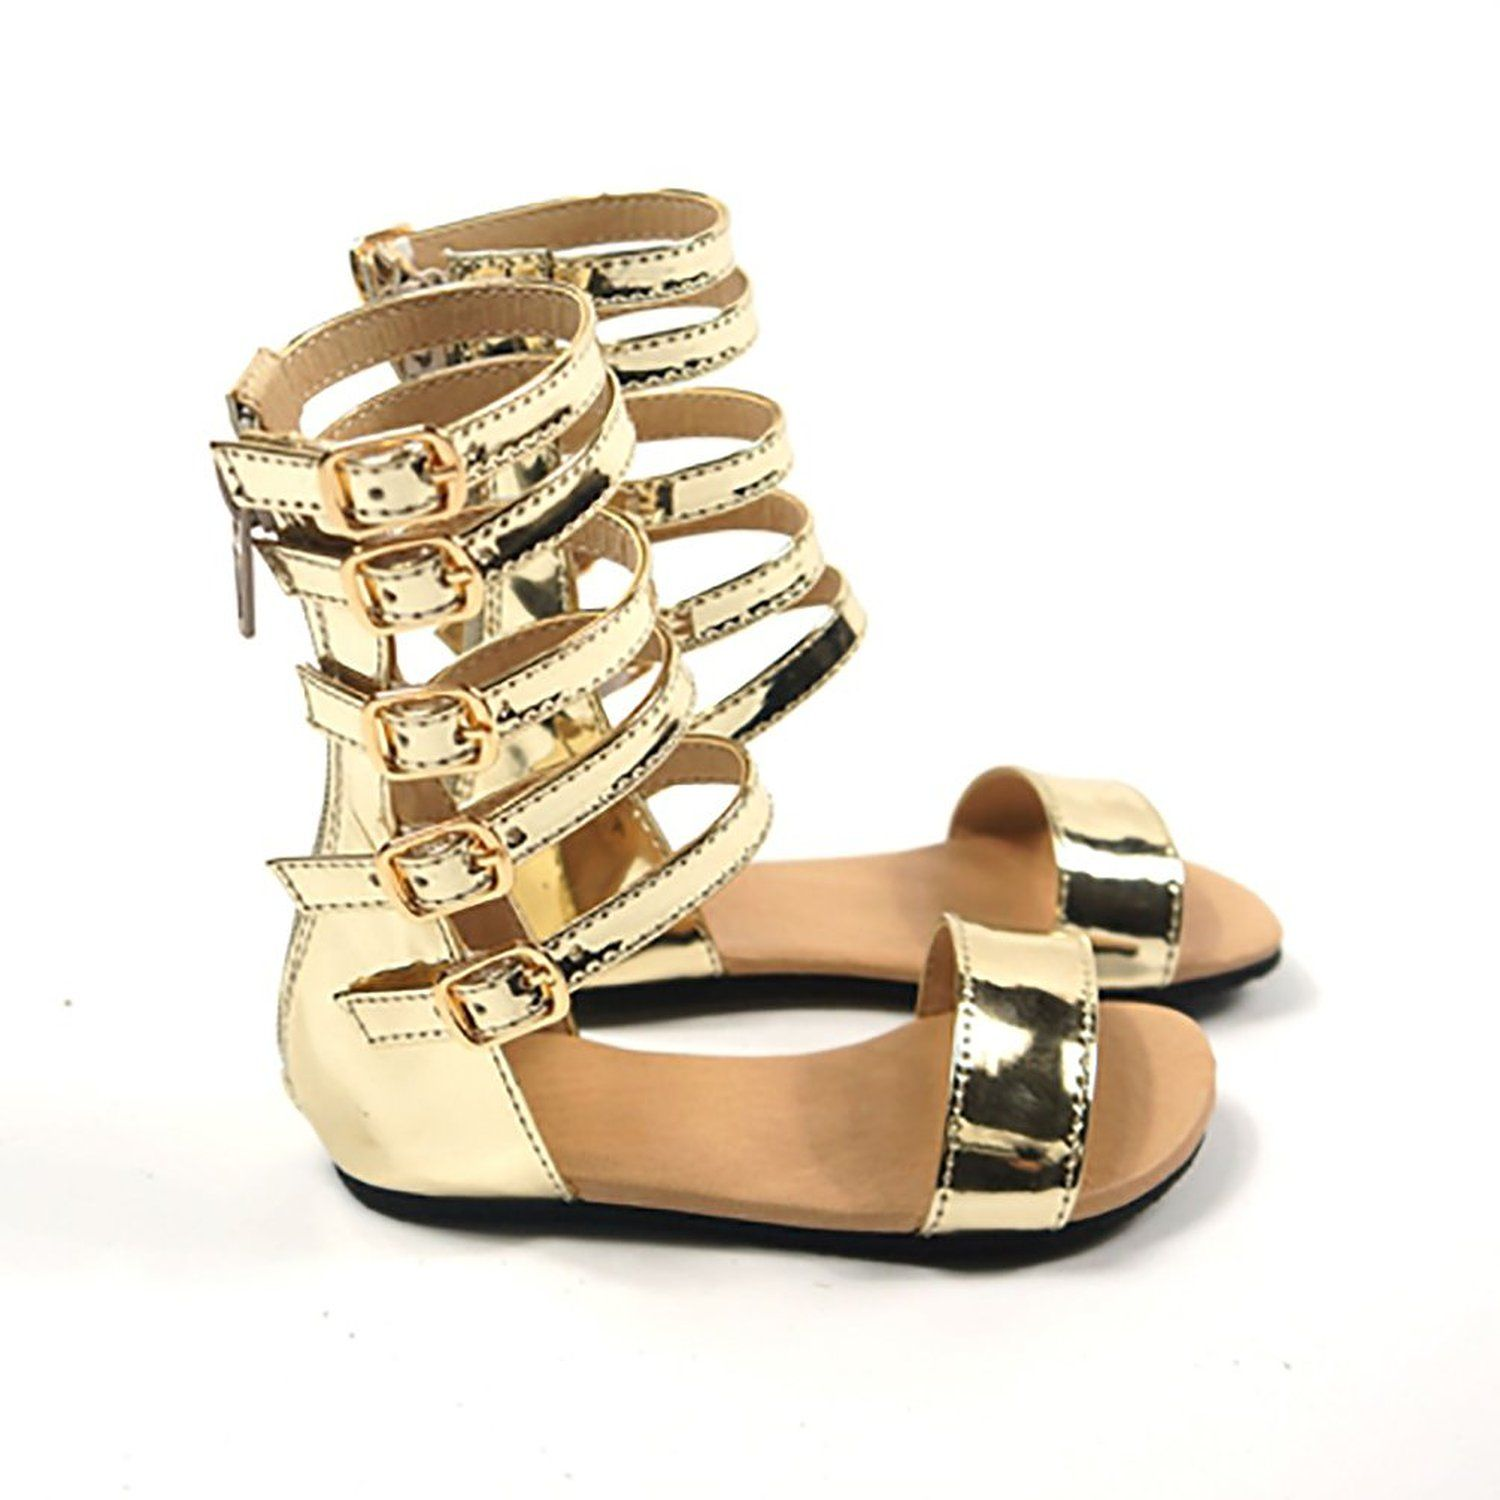 6ff73cc3dda24 Amazon.com: D.LIN Fashion Infant/Toddler/Kid Gladiator Sandals Girls ...